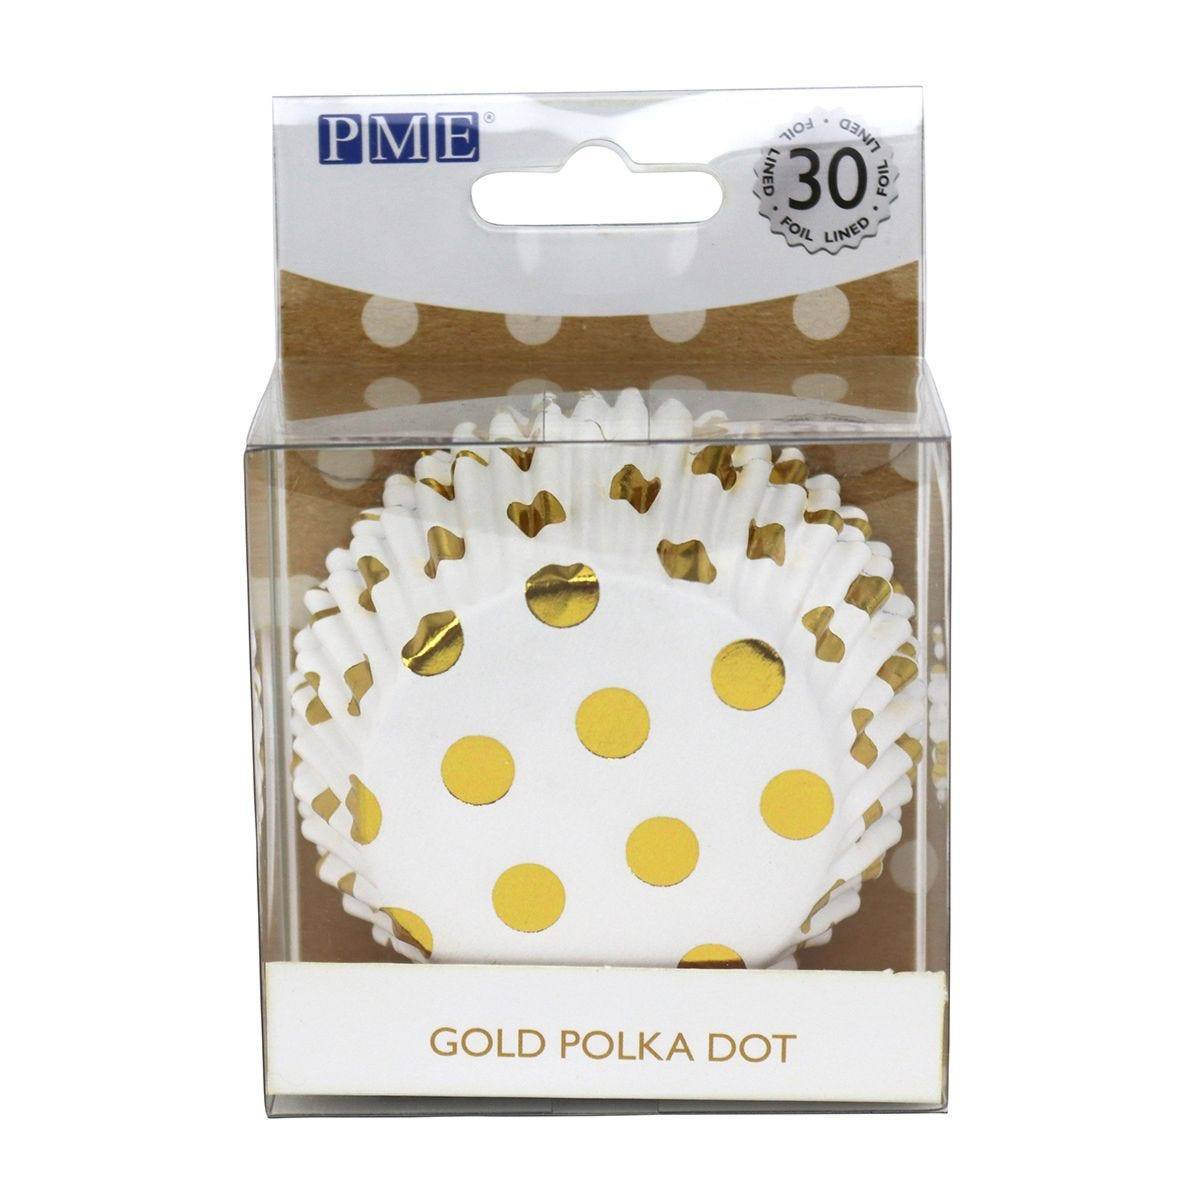 PME Gold Foil Polka Dots Lined Cupcake Cases